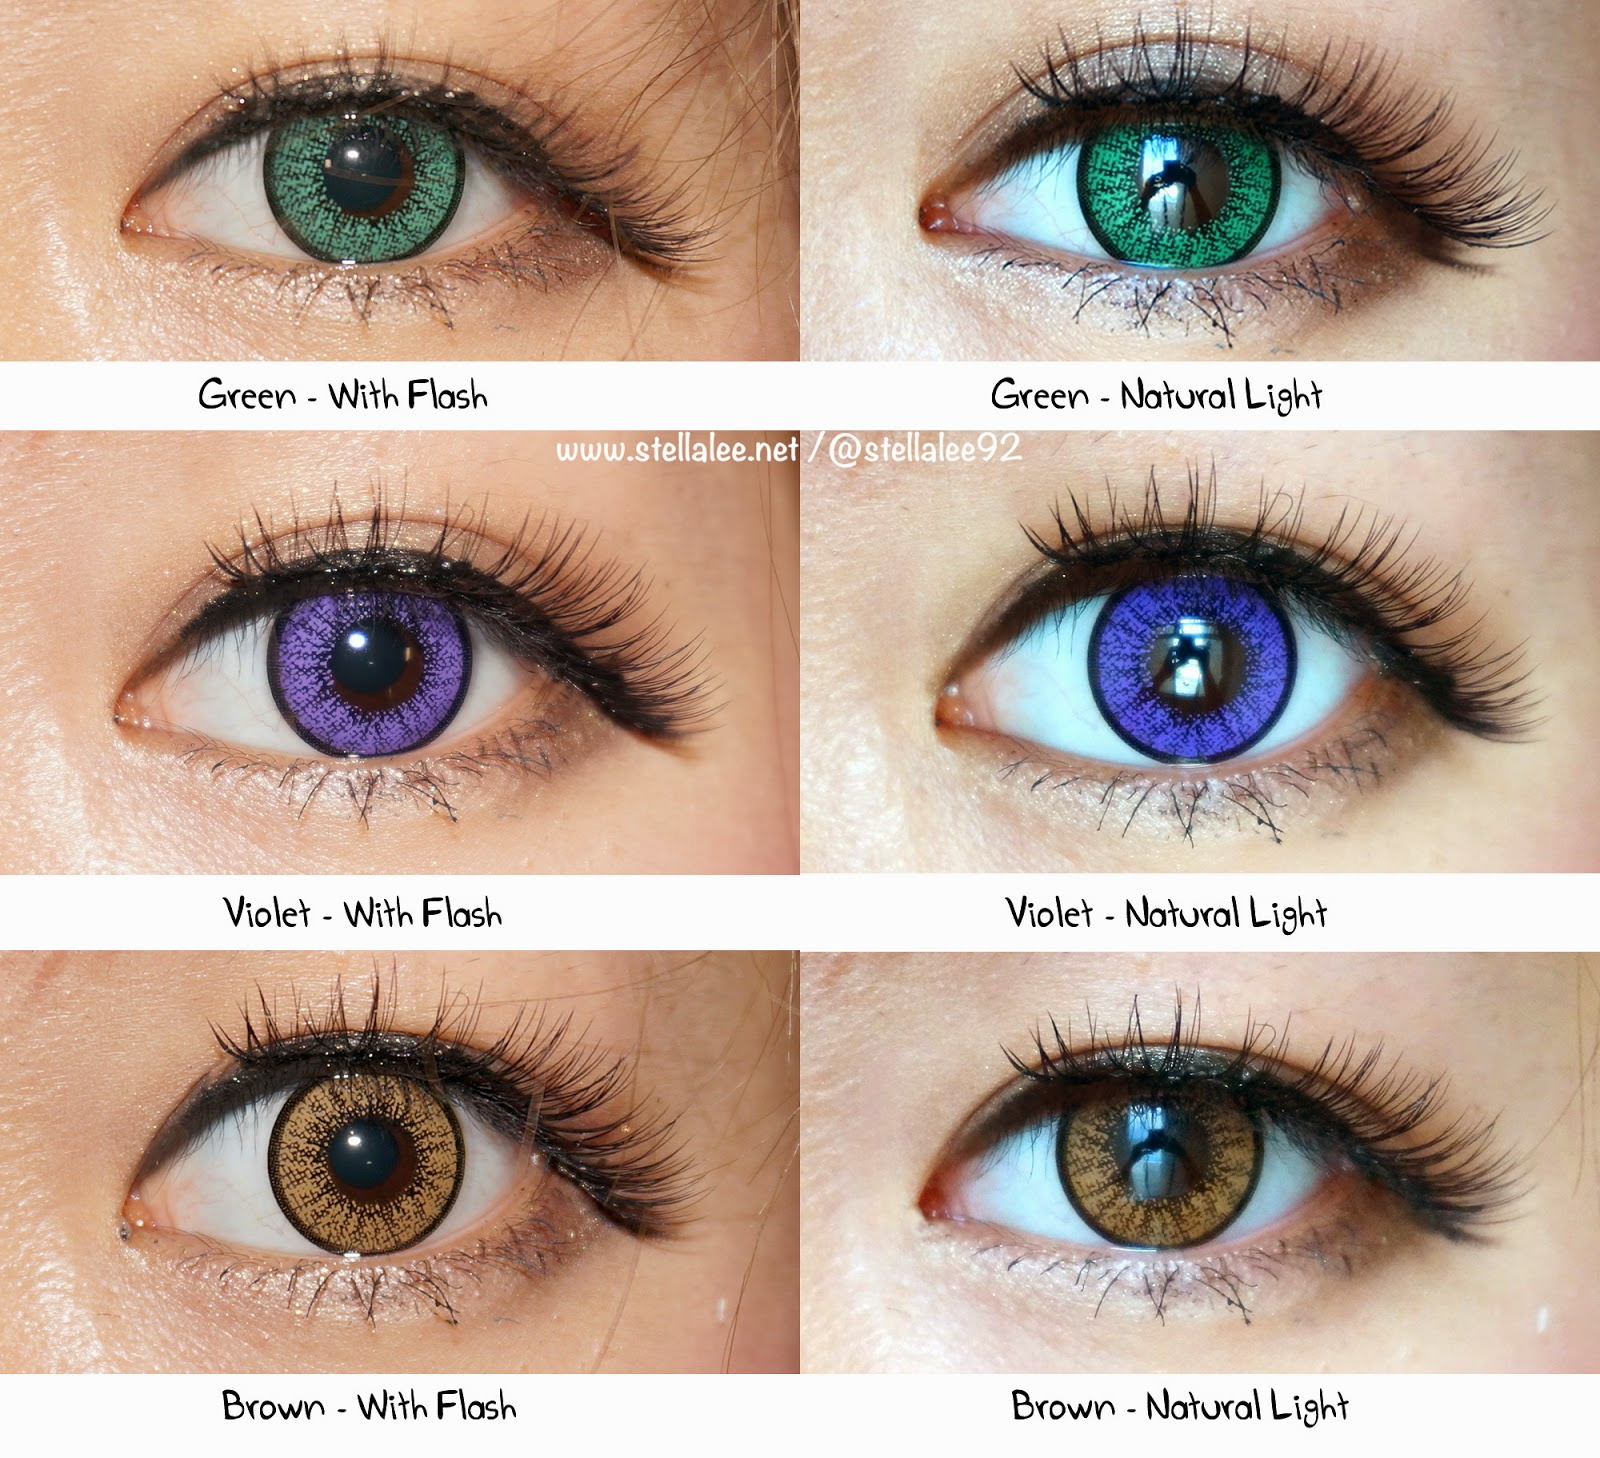 Here are the parisons of the circle lenses with and without flash